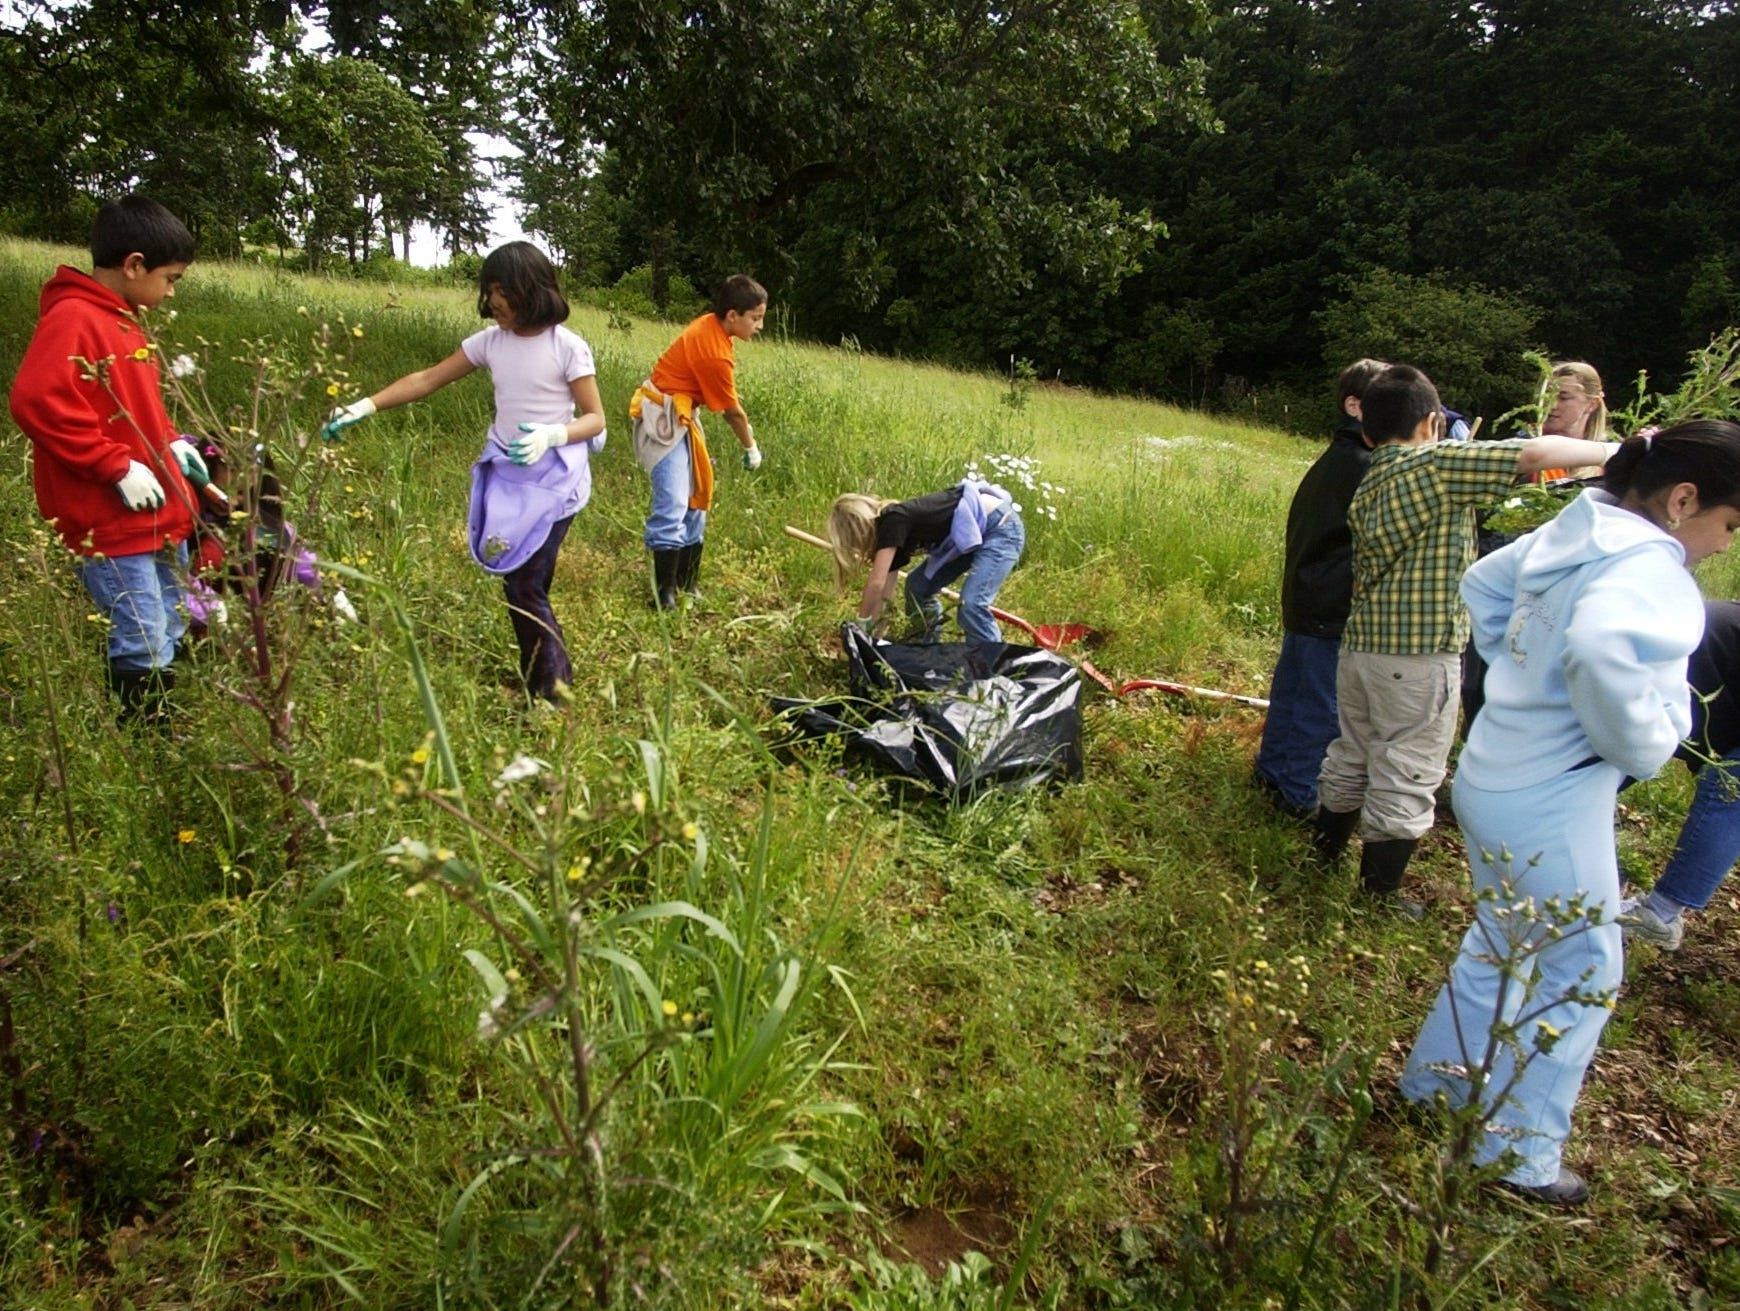 Students from Hallman Elementary came to Bonesteele Park to pull weeds in 2004.